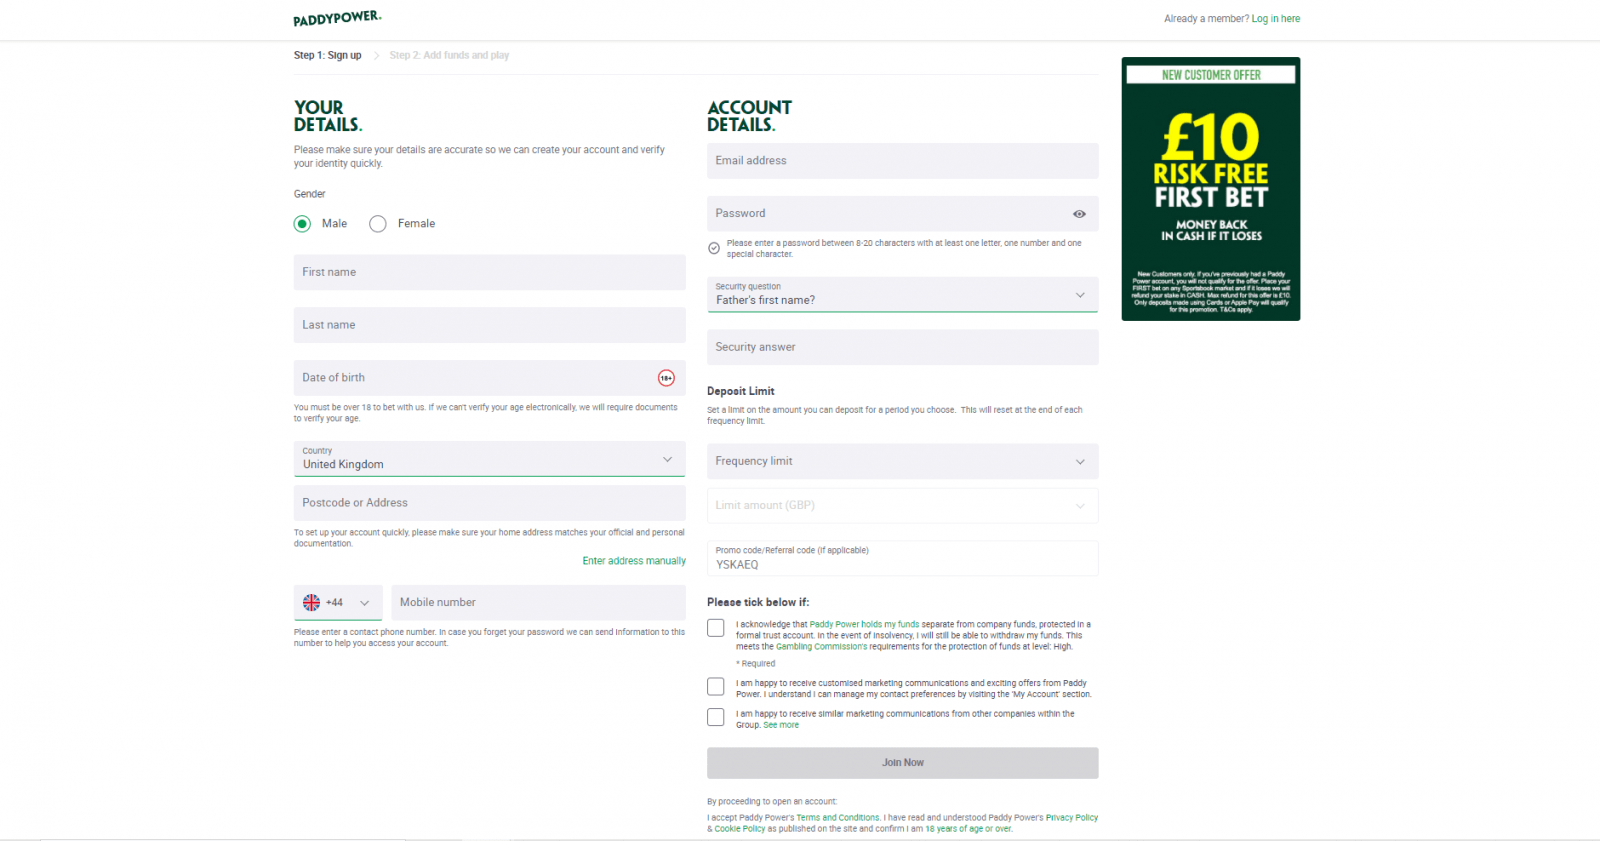 Paddy Power free bet - sign up screen